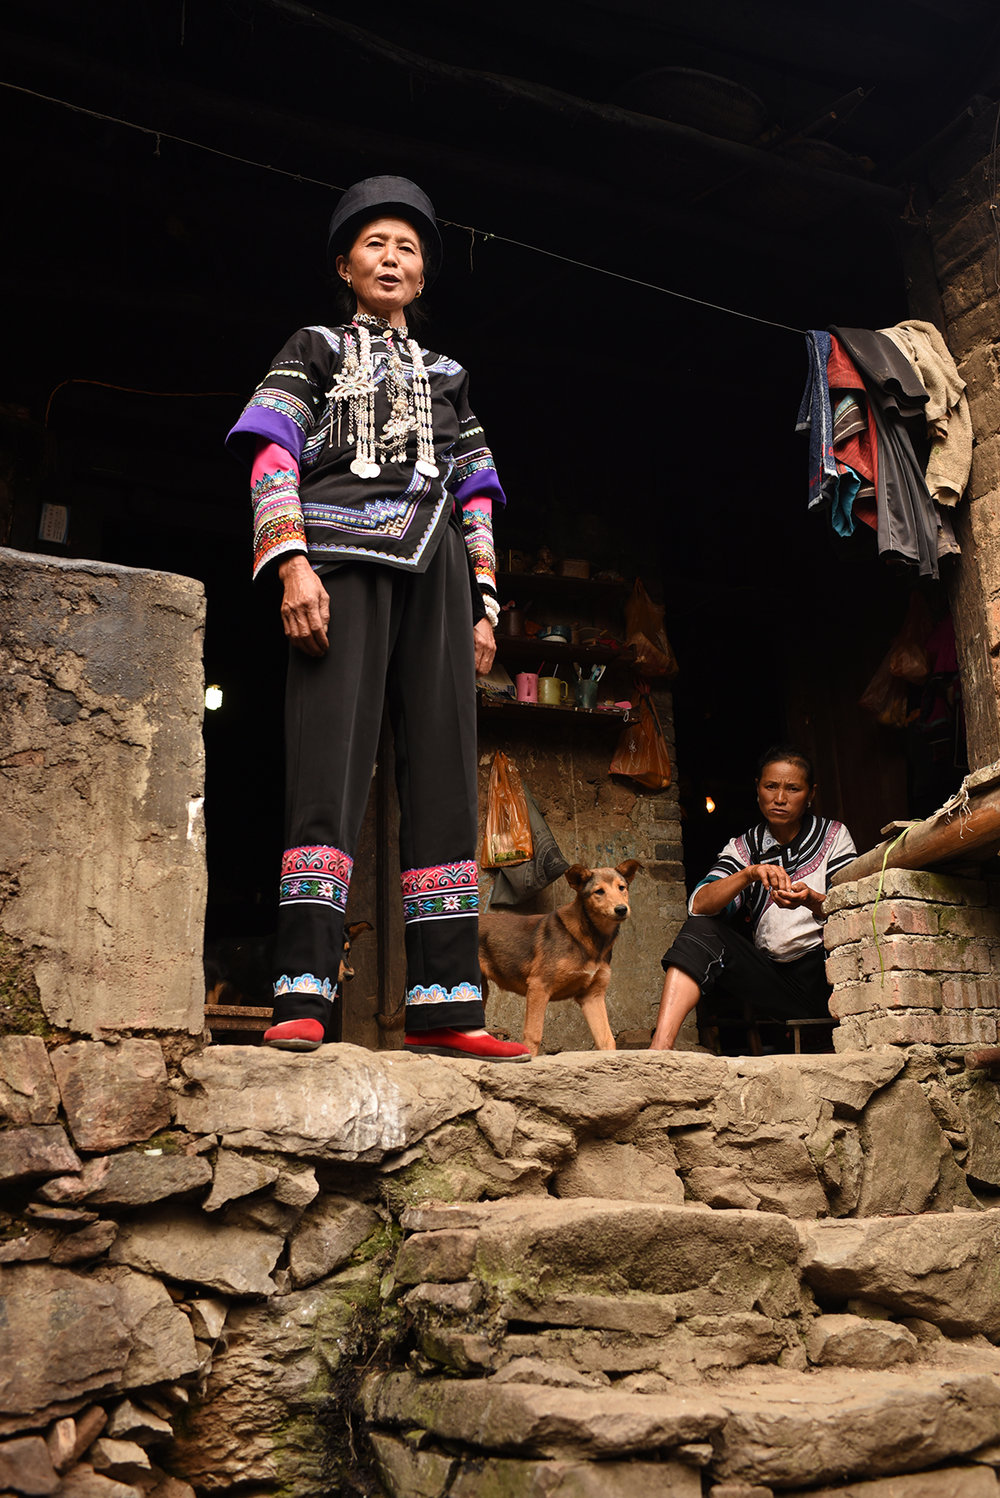 Li Apang, inheritor of Yi Lezuo traditional dance. Dieshi village, Yunnan, 2017.